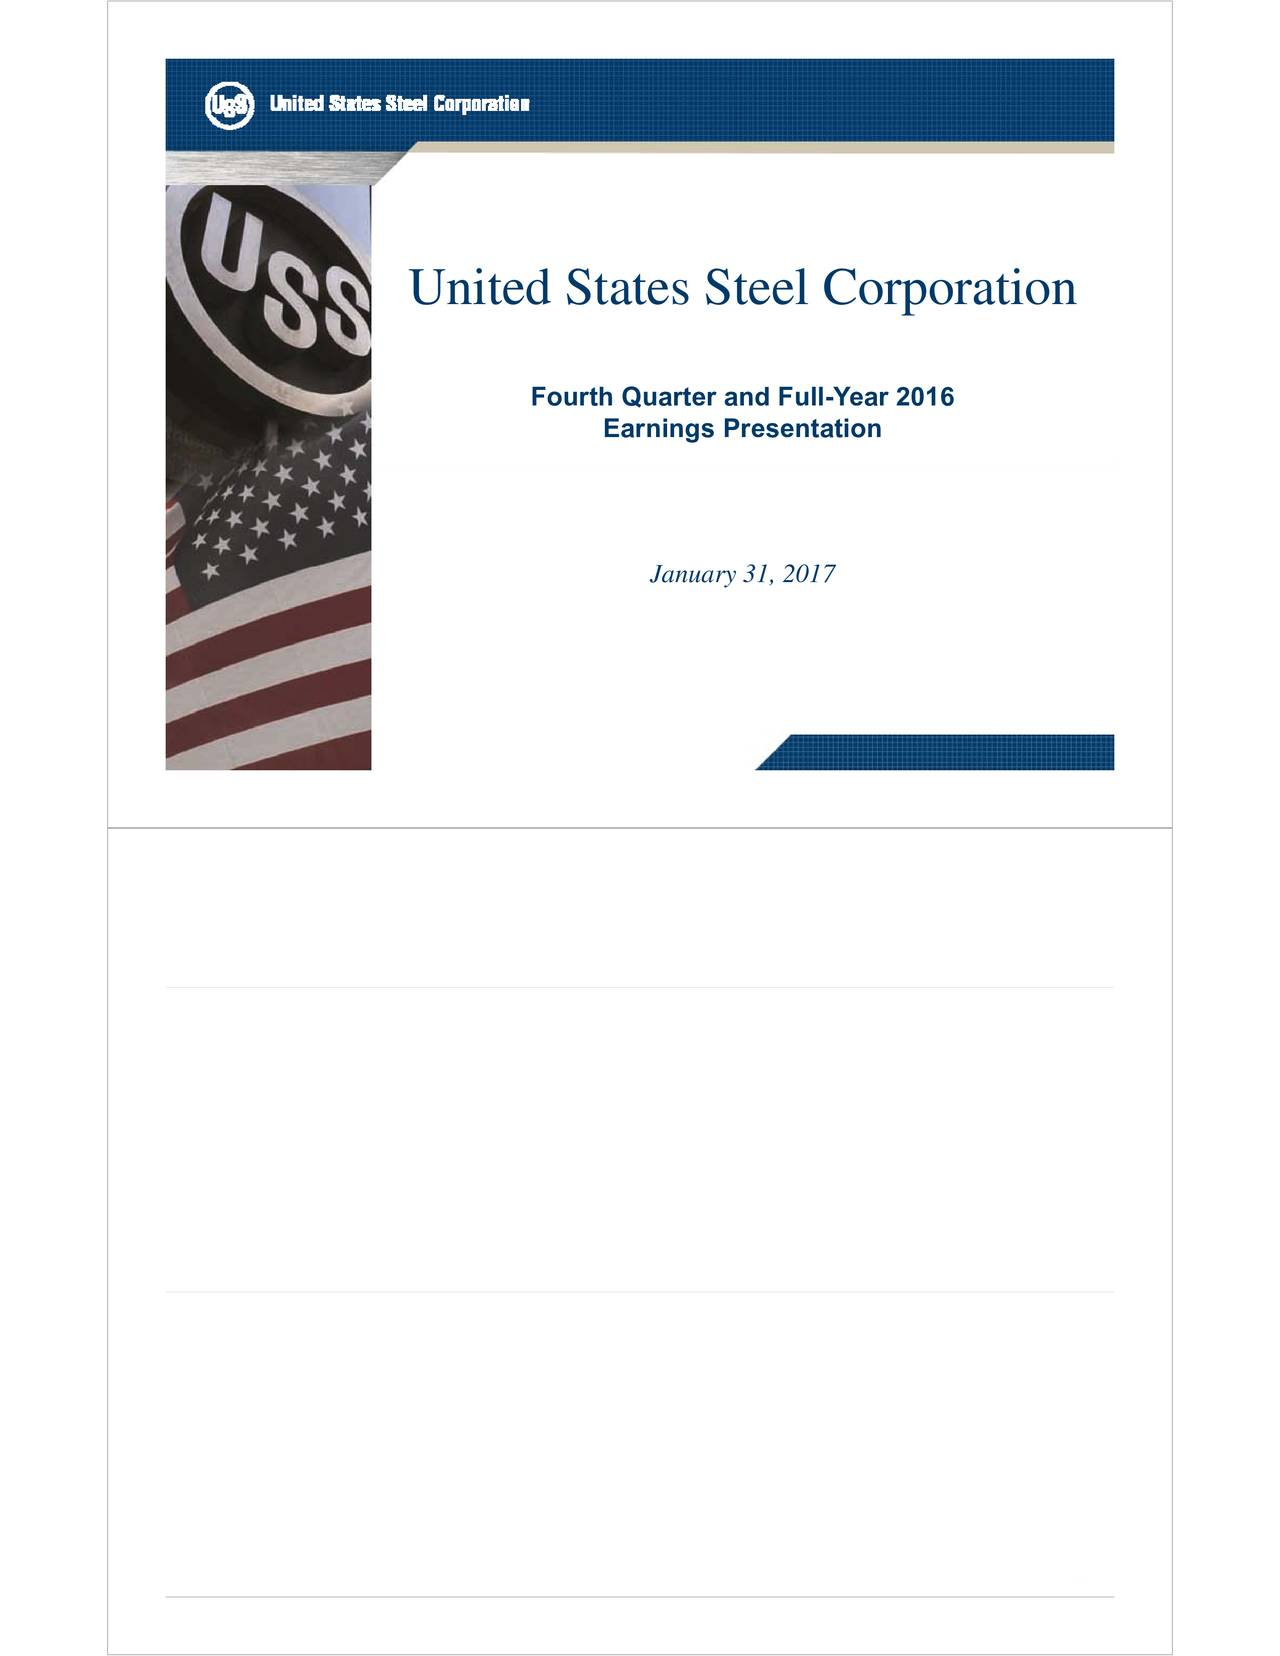 Fourth Quarter and Full-Year 2016 Earnings Presentation January 311,2017 2011 United States Steel Corporation 2